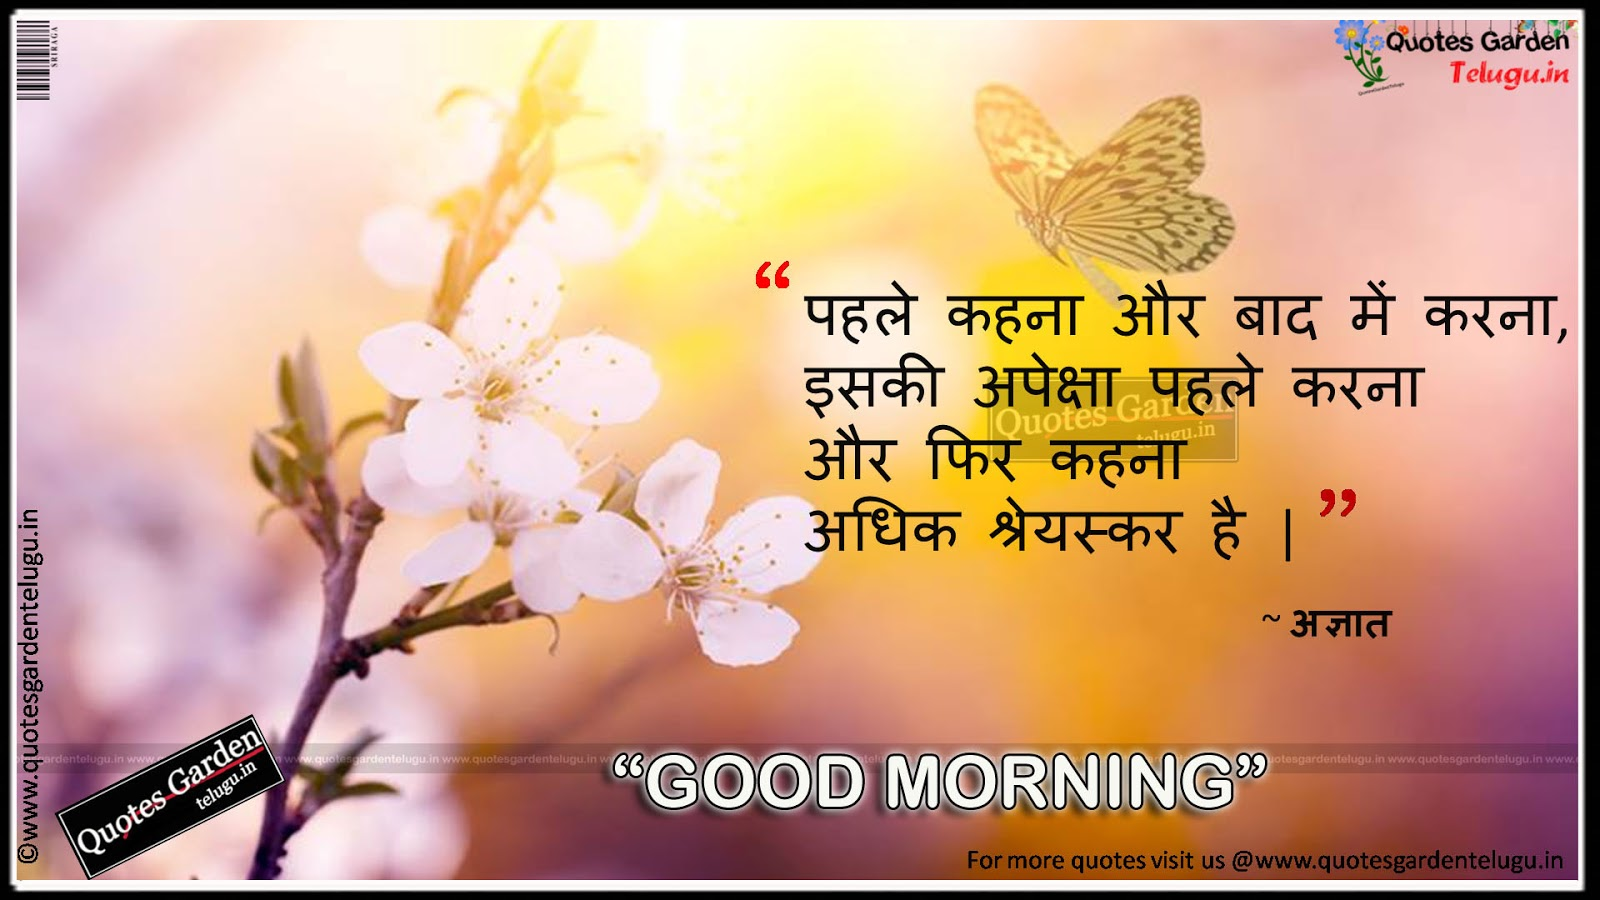 Beautiful Heart Touching Quotes Wallpapers Best Good Morning Quotes In Hindi Quotes Garden Telugu